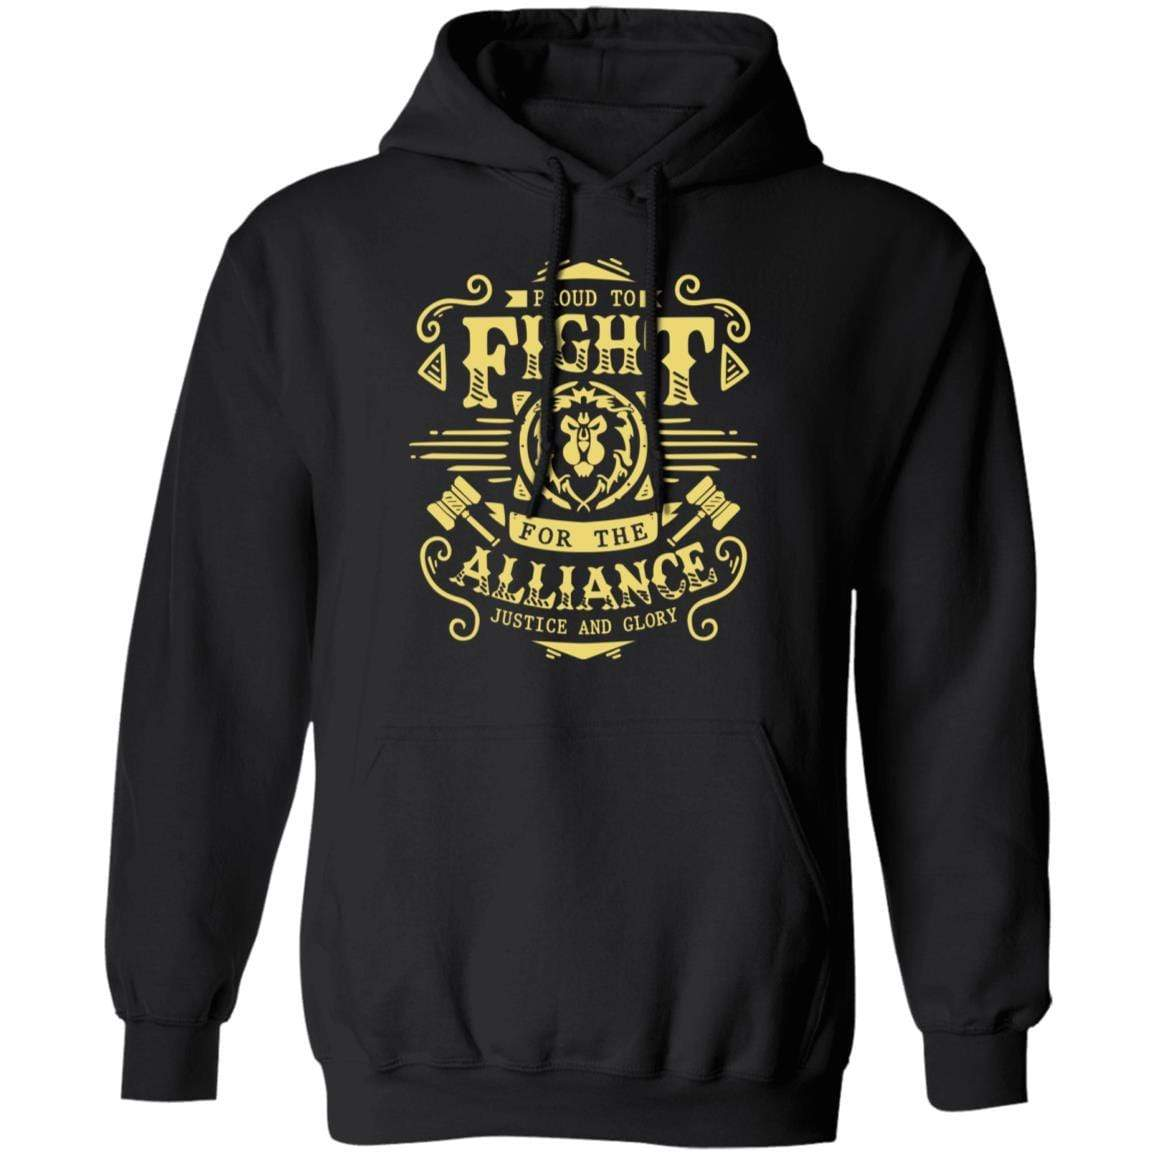 Proud To Fight For The Alliance Justice And Glory T-Shirts, Hoodies 541-4740-88445021-23087 - Tee Ript